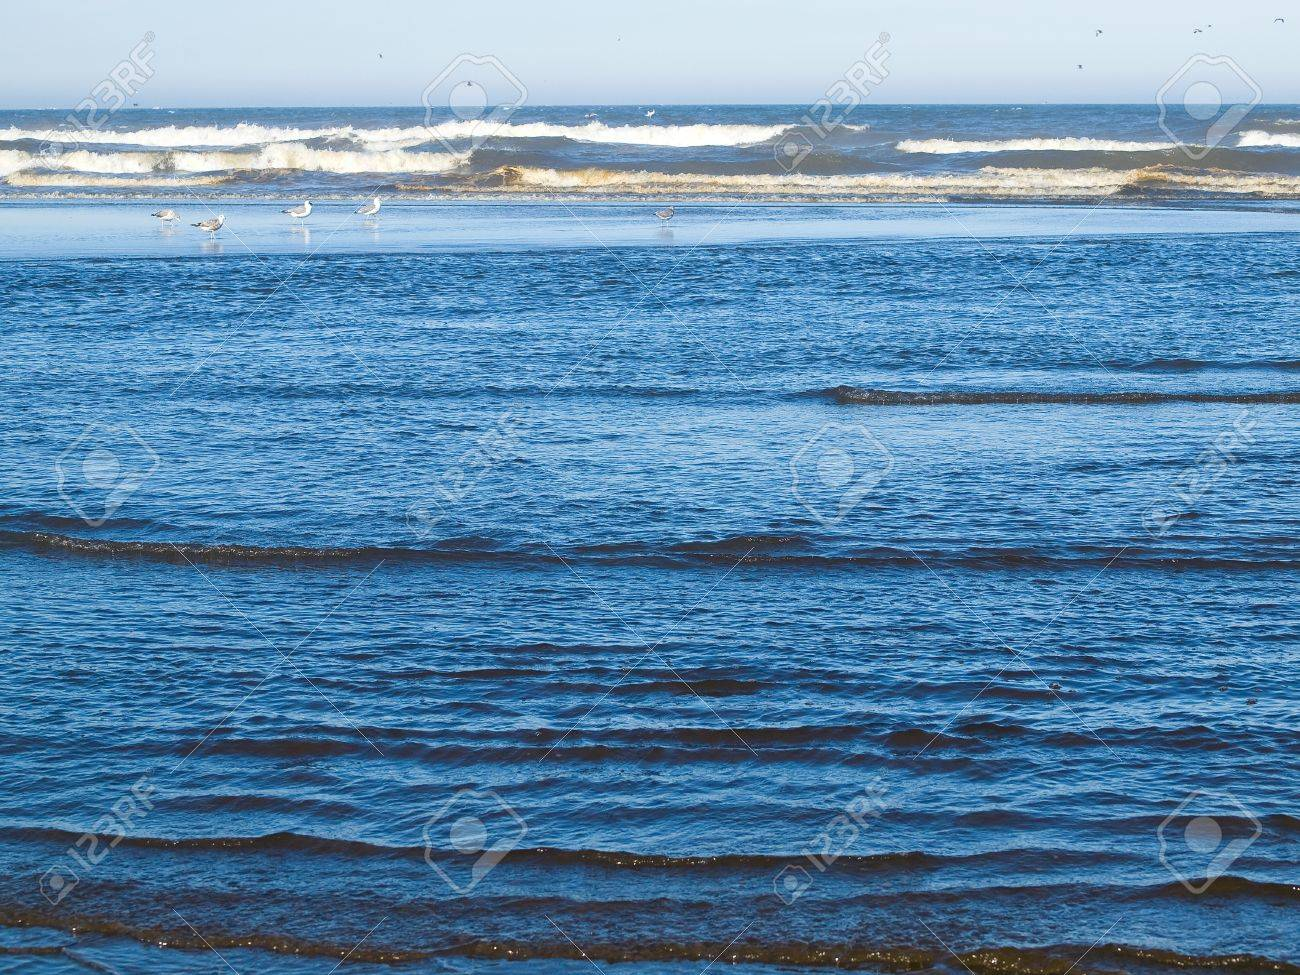 A Variety of Seabirds at the Seashore Featuring Pelicans Stock Photo - 17245920